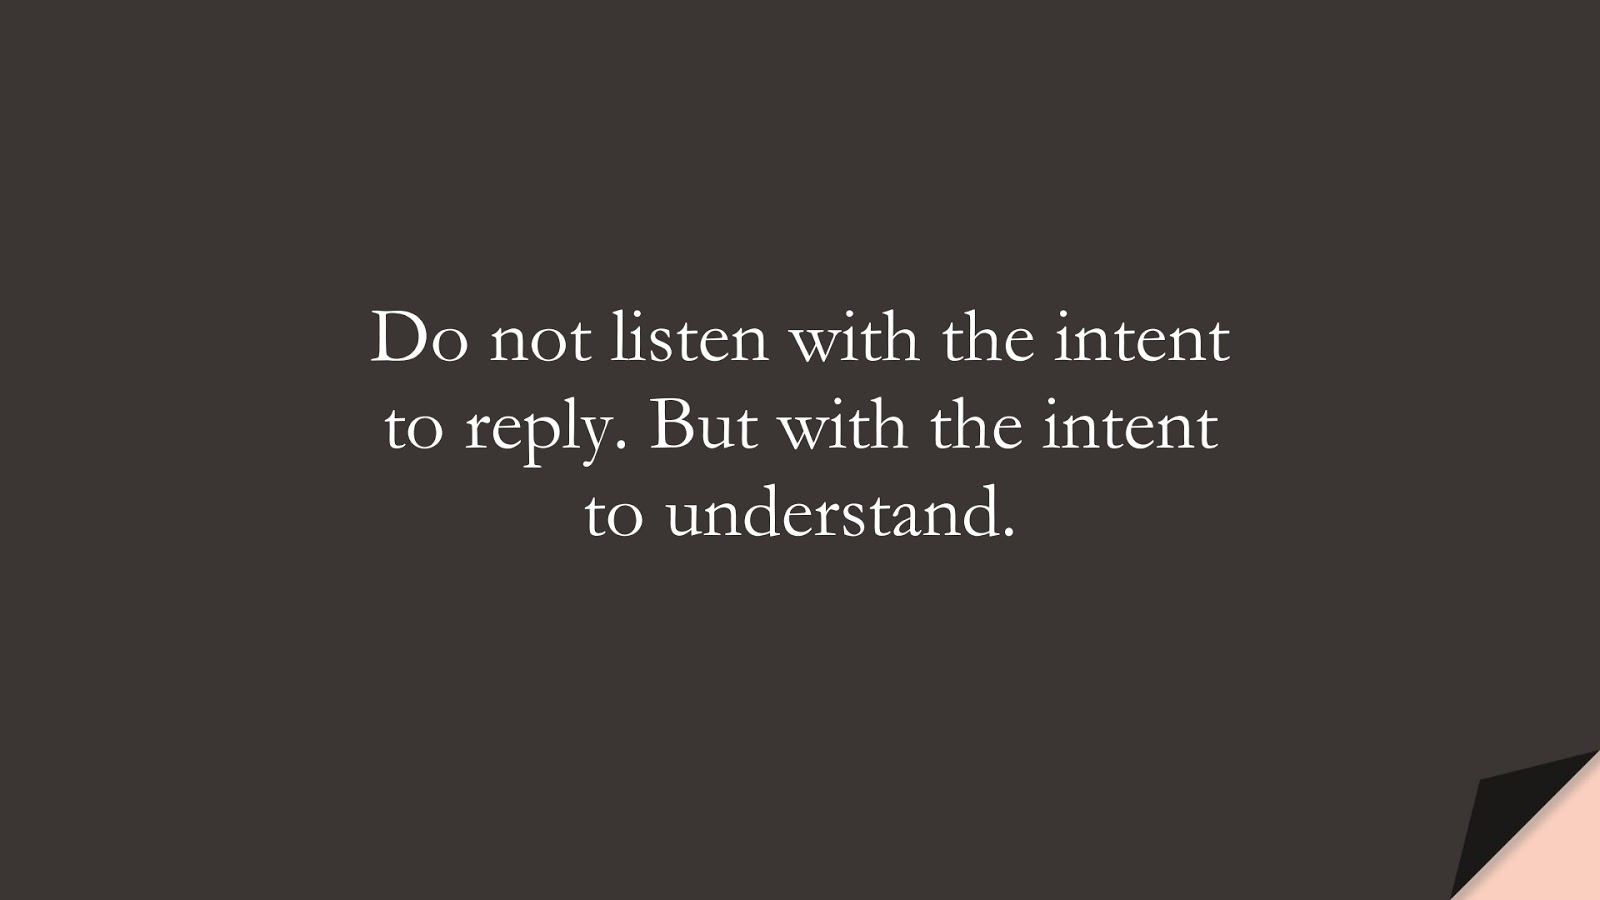 Do not listen with the intent to reply. But with the intent to understand.FALSE